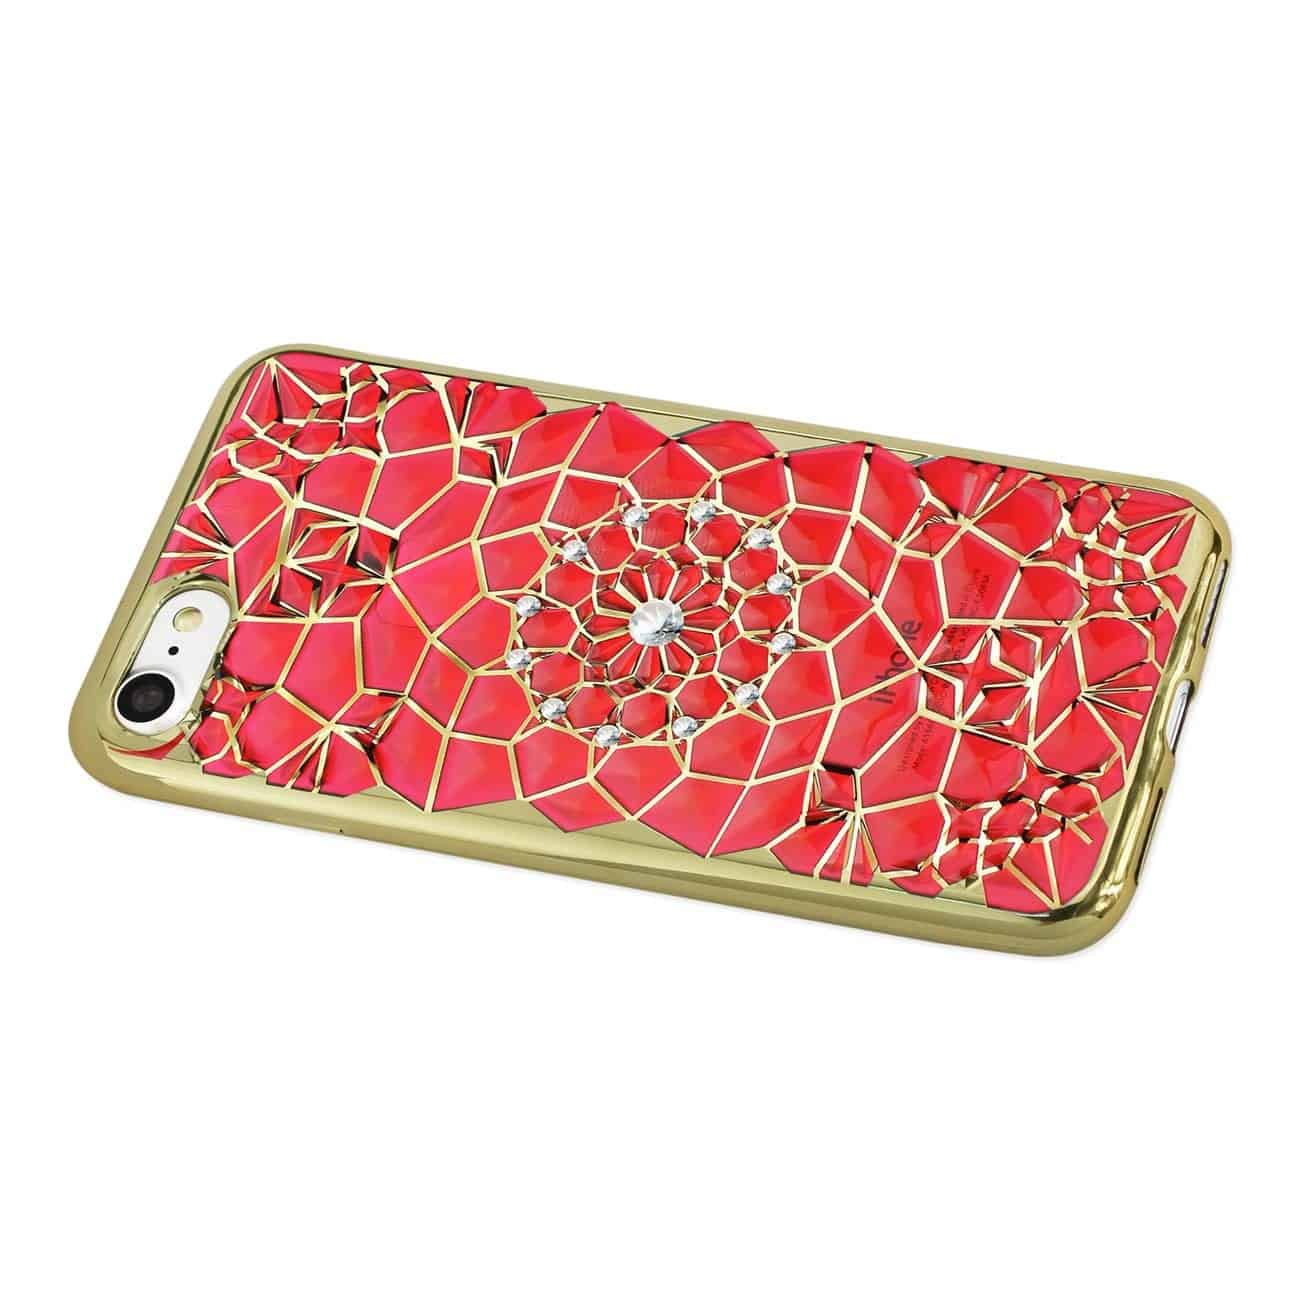 IPHONE 7 SOFT TPU CASE WITH SPARKLING DIAMOND SUNFLOWER DESIGN IN RED